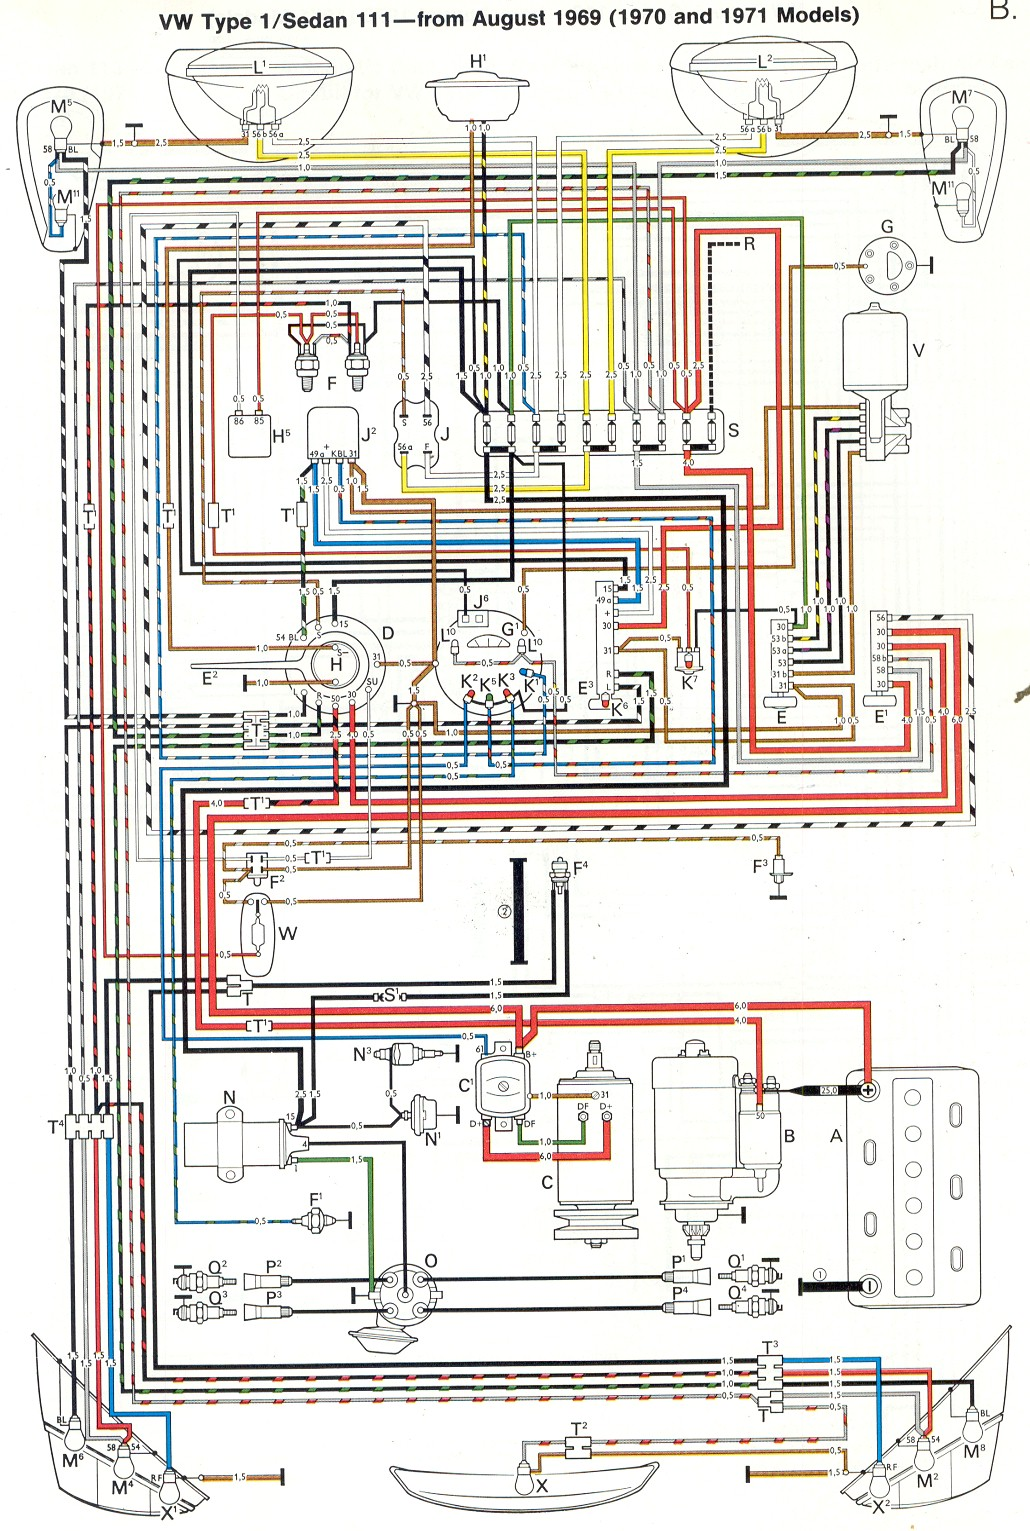 1968 vw bug wiring wiring diagram detailed 1960 VW Beetle Wiring Diagram 1968 vw bug wiring wiring diagram 1968 vw bug frame 1968 vw bug wiring